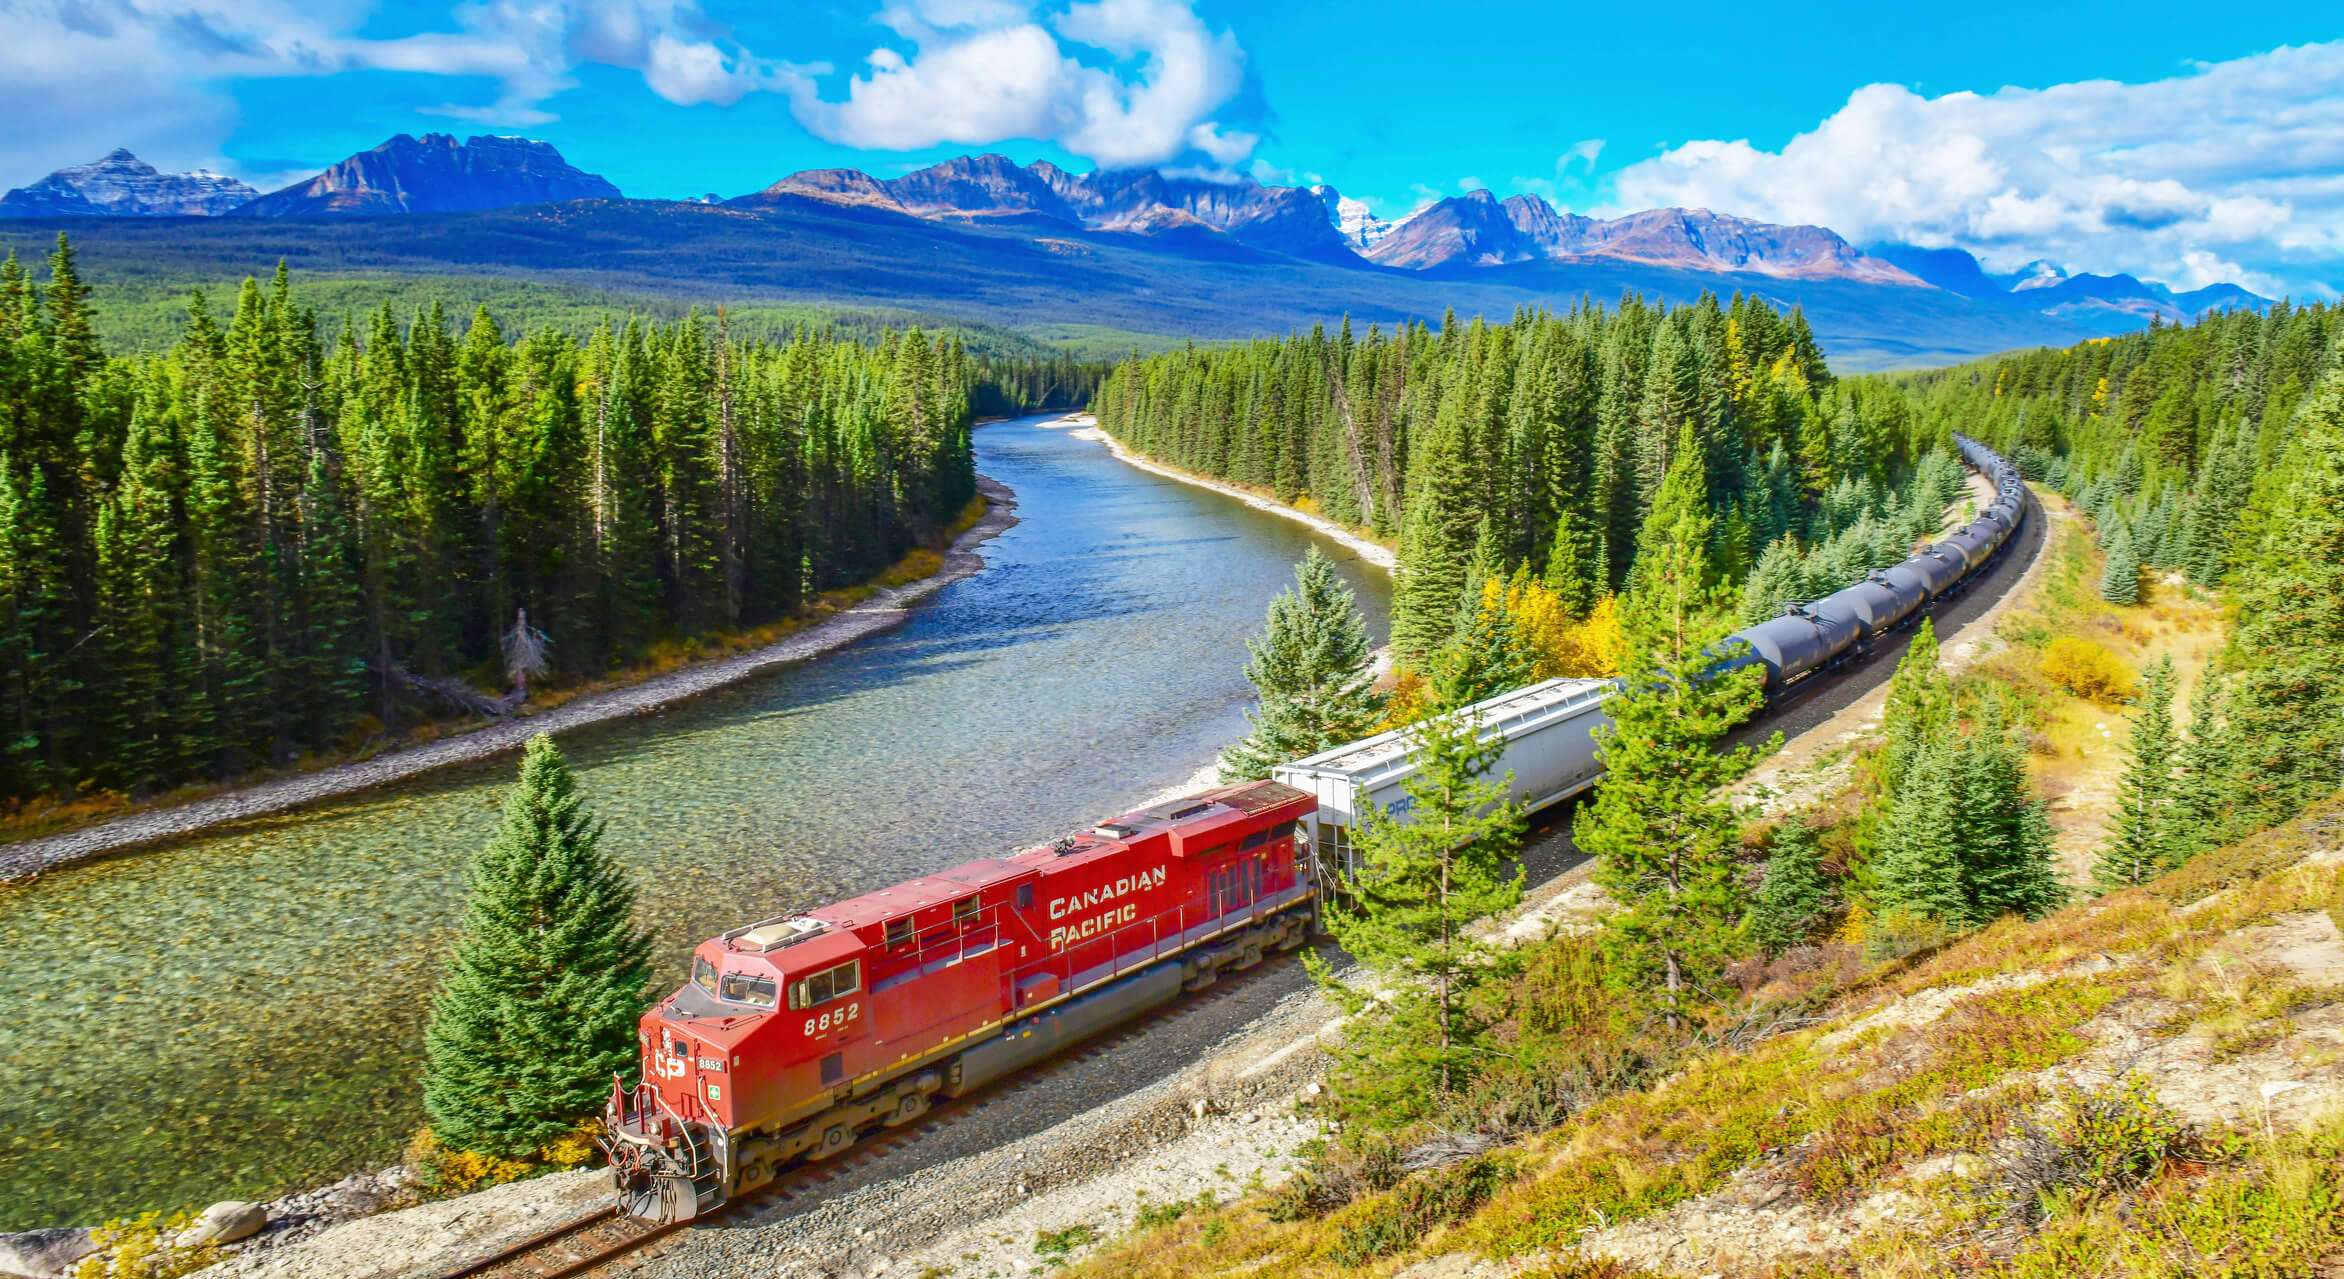 Harvard professor Levitt began the JTBD discussion by teaching that the railroad industry should consider itself as the transportation industry..